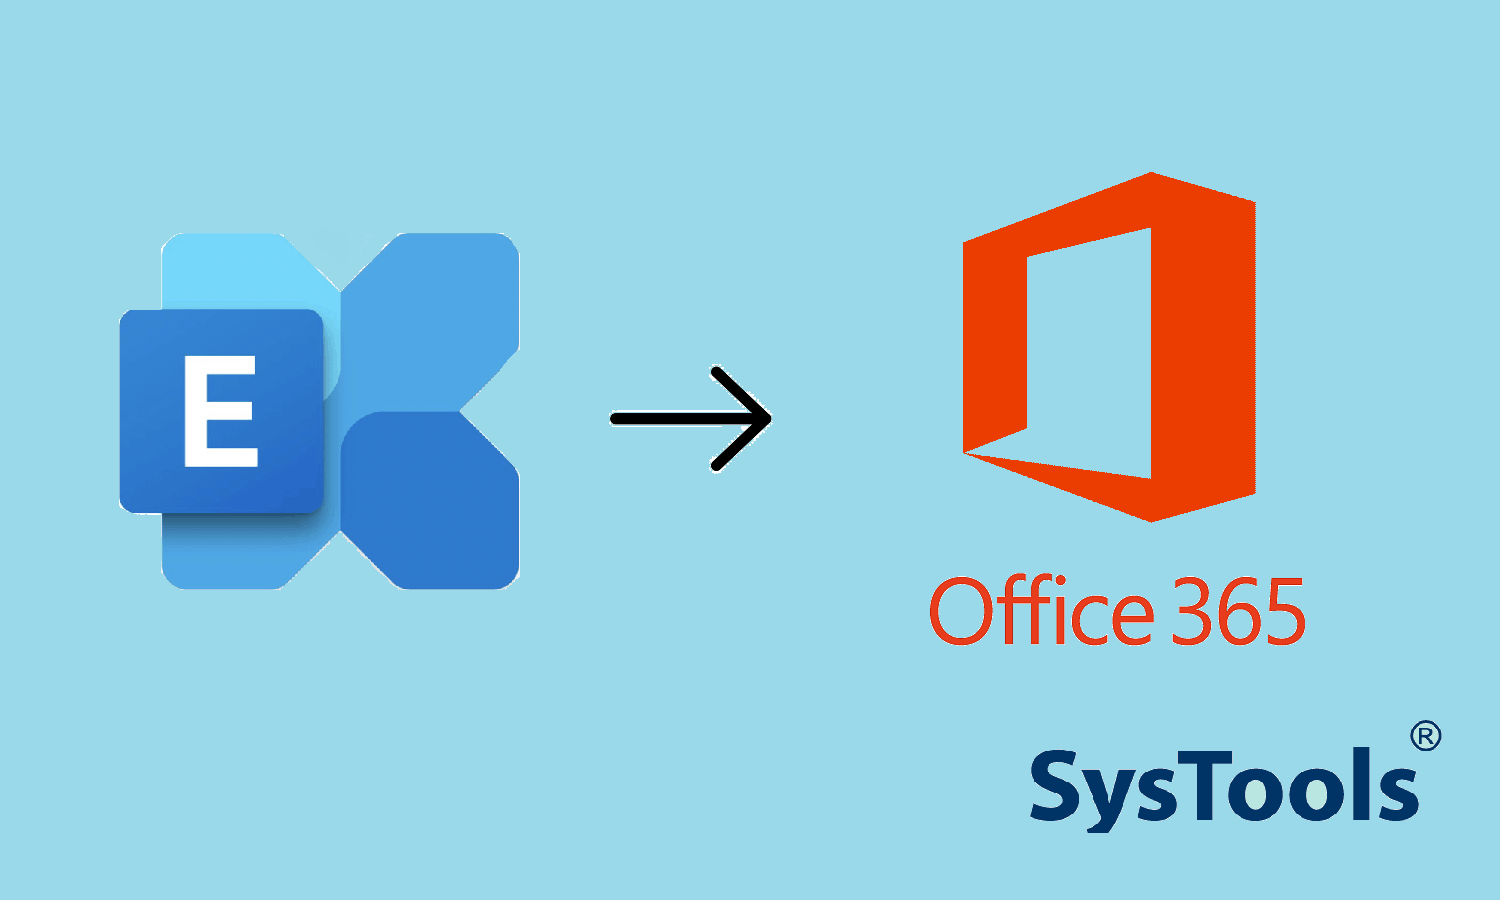 Migrate to Office 365 from Exchange – Method with Satisfying Results